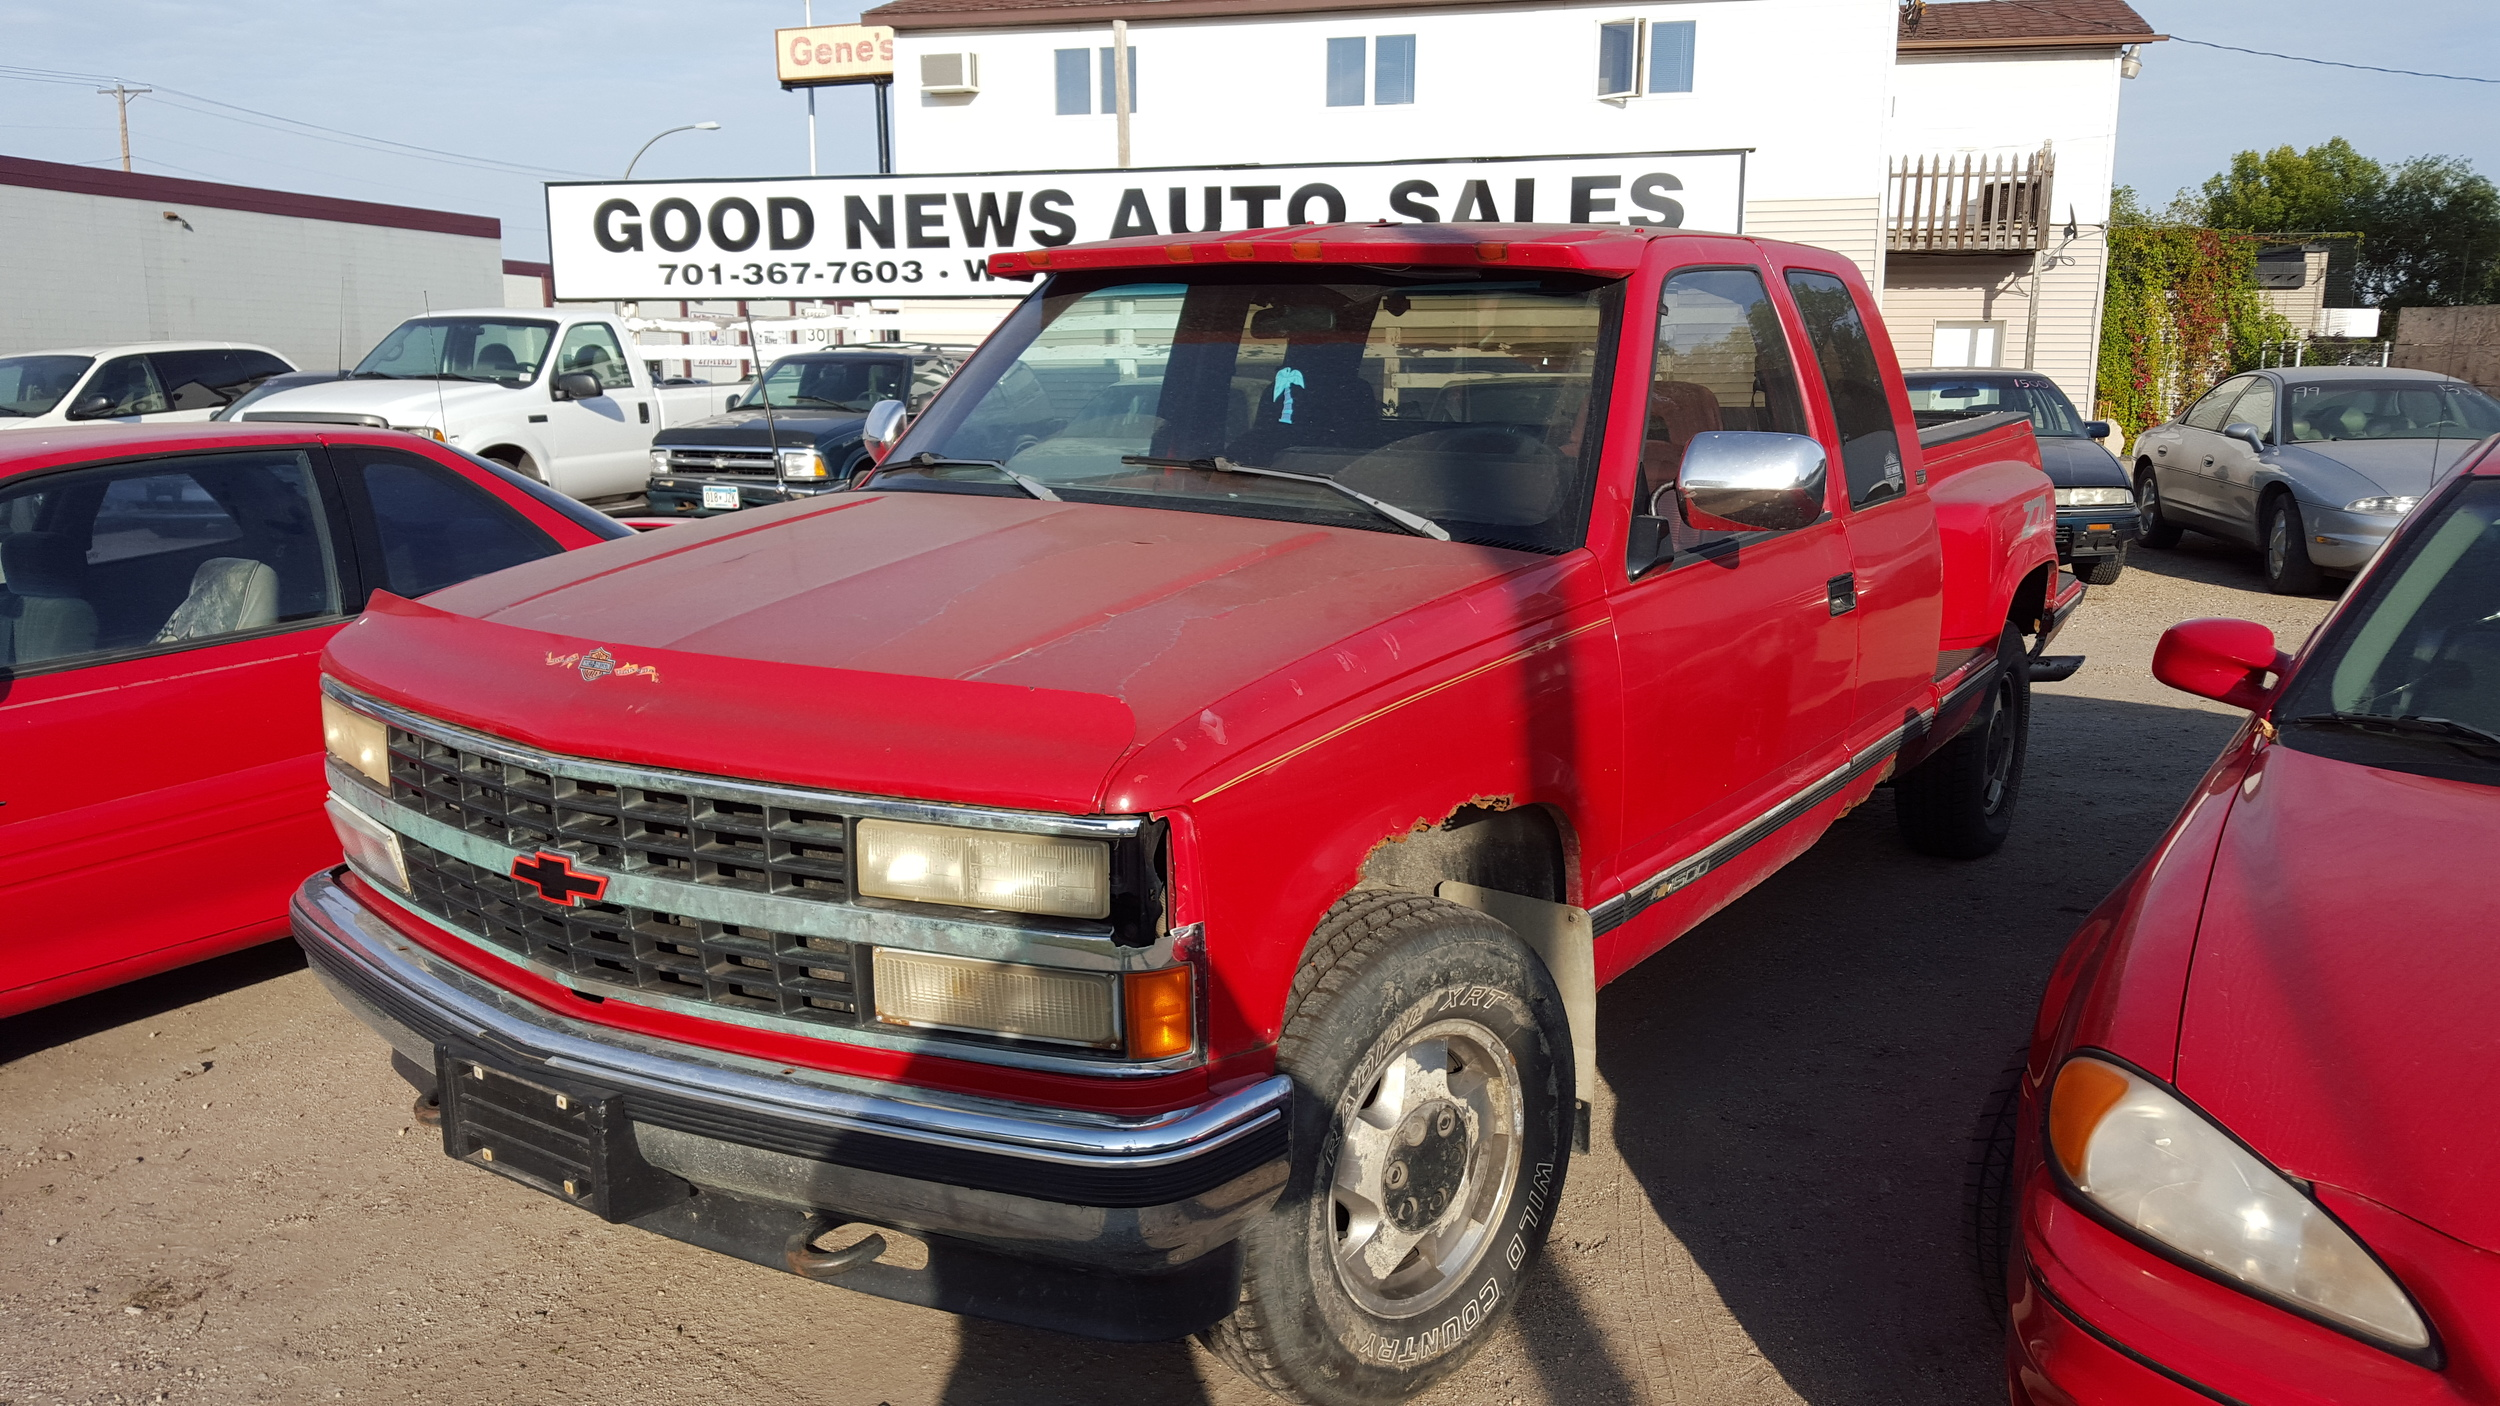 hight resolution of 1992 chevy k1500 ext cab stepside bed 174k miles pw pl cd 4x4 asking 900 firm